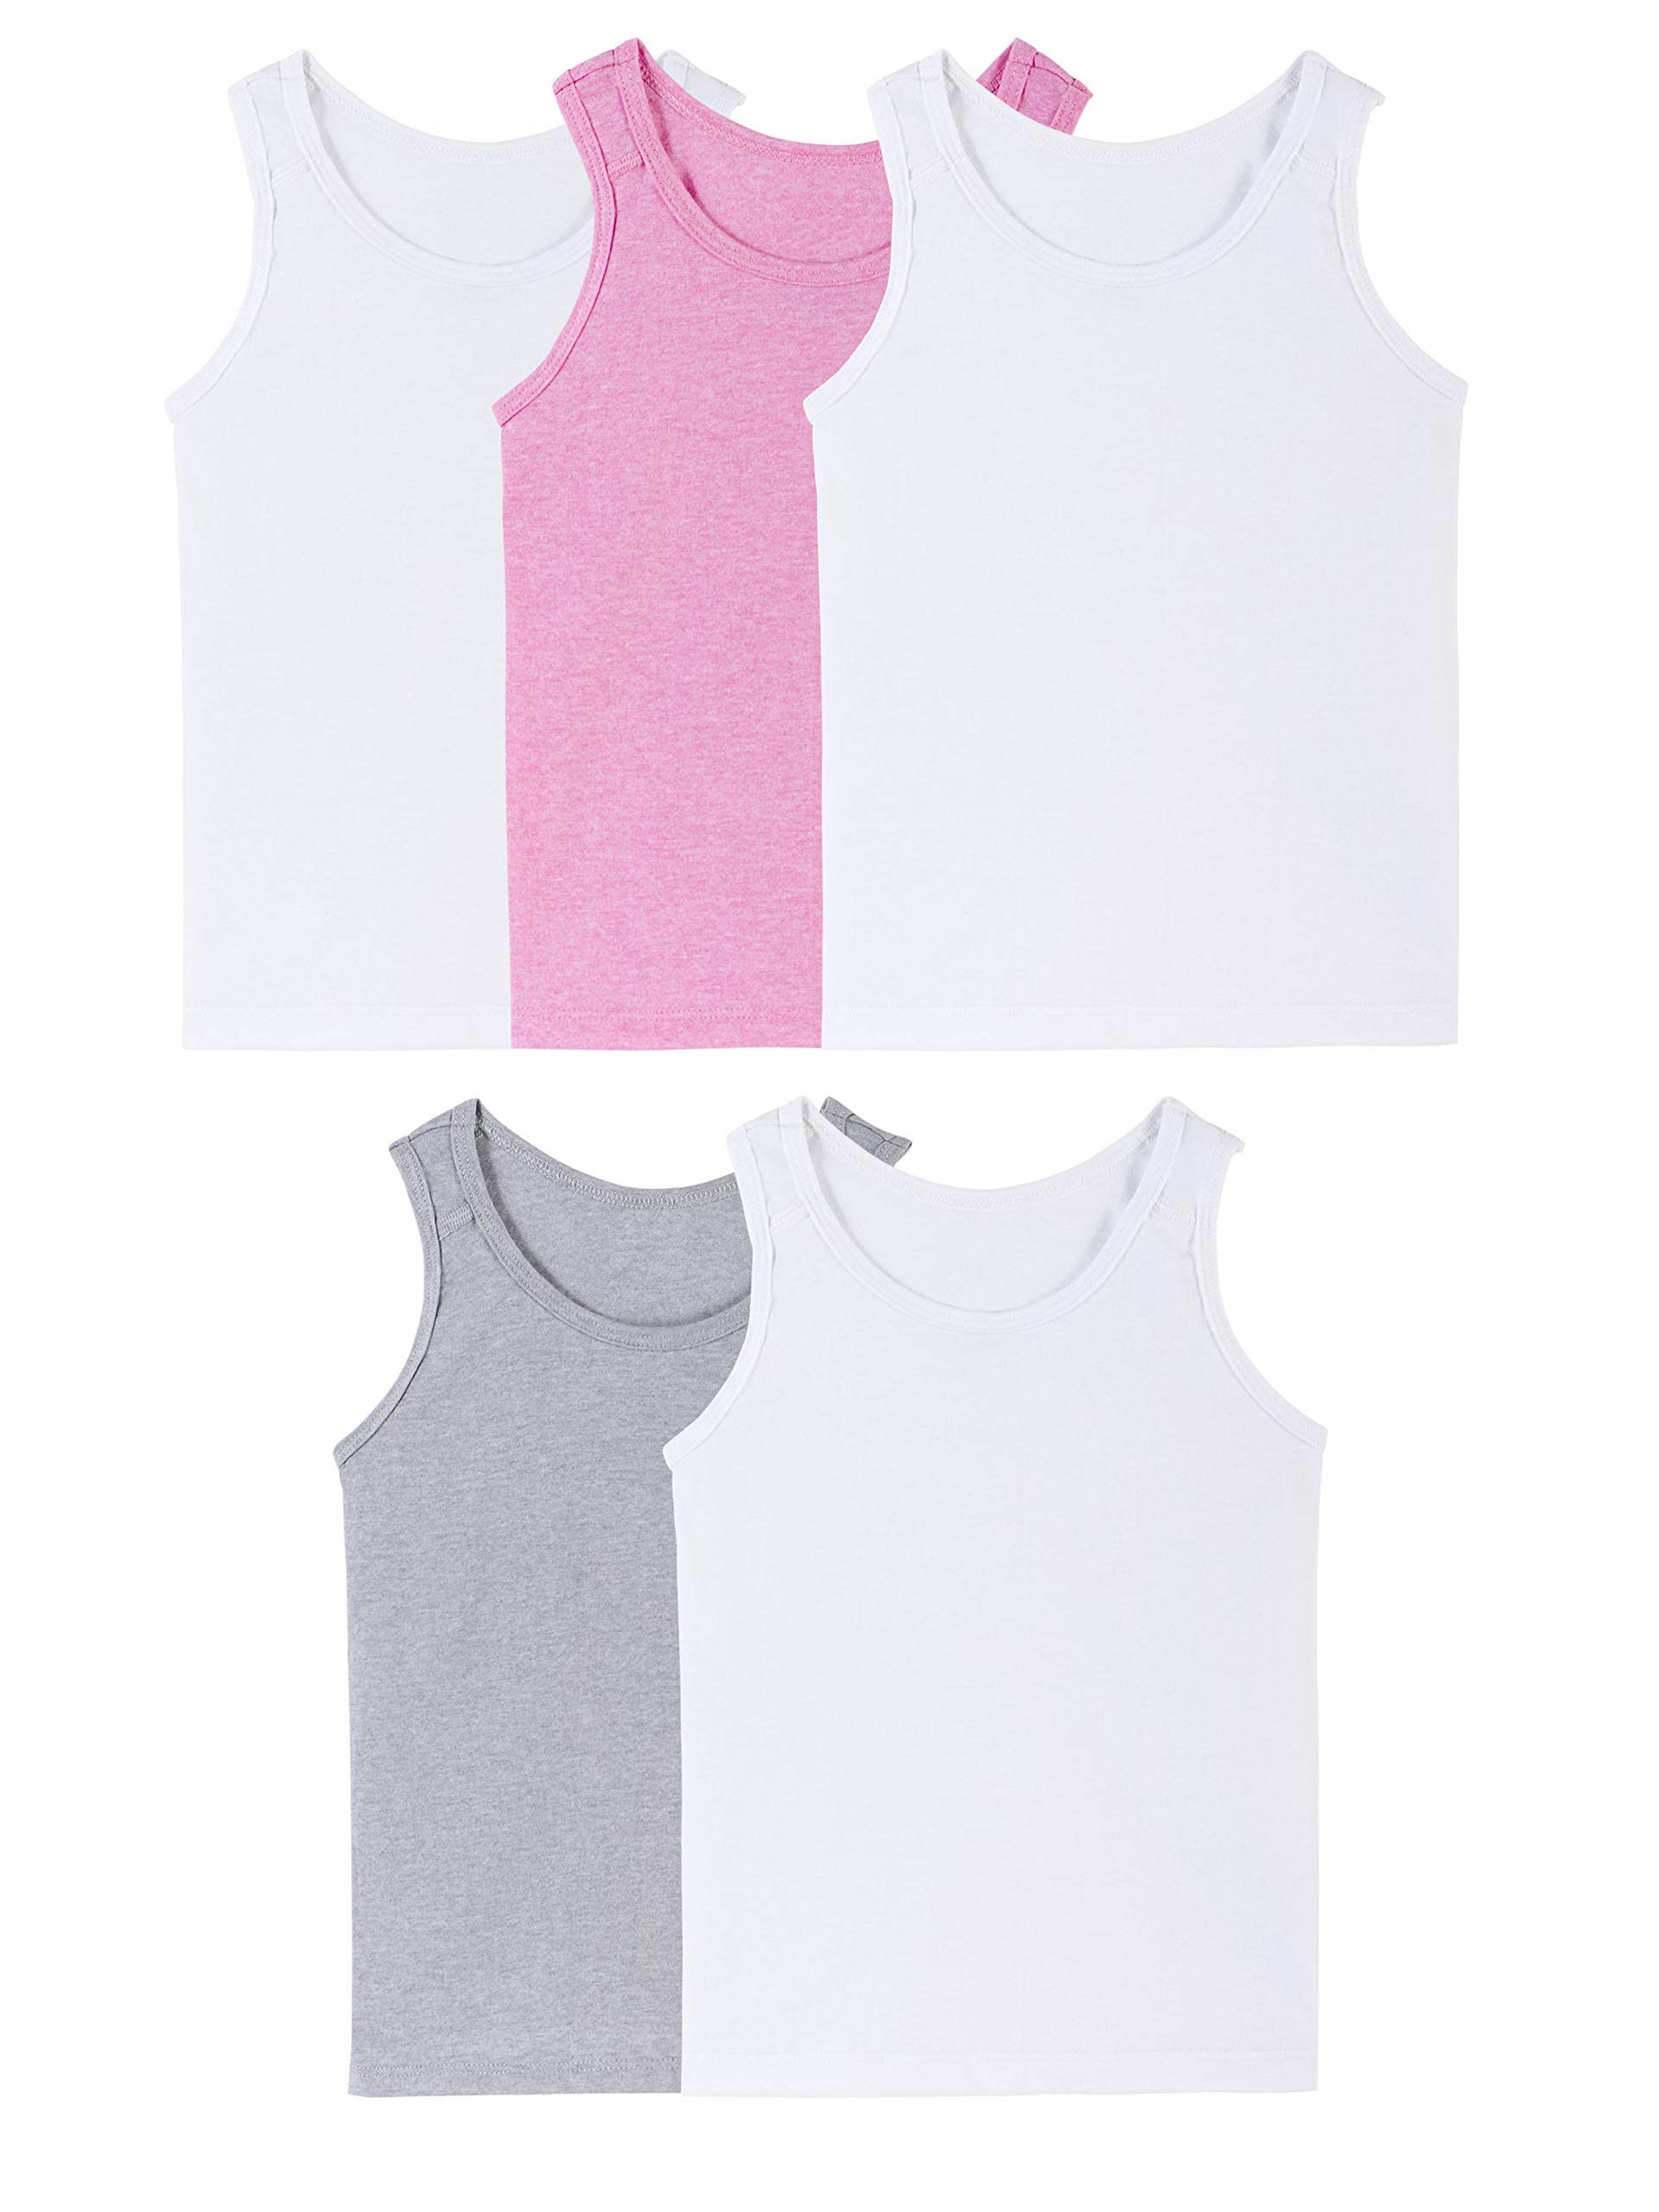 Fruit of the Loom Girls' Big Assorted Tank (Pack of 5), assorted/jersey, Medium by Fruit of the Loom